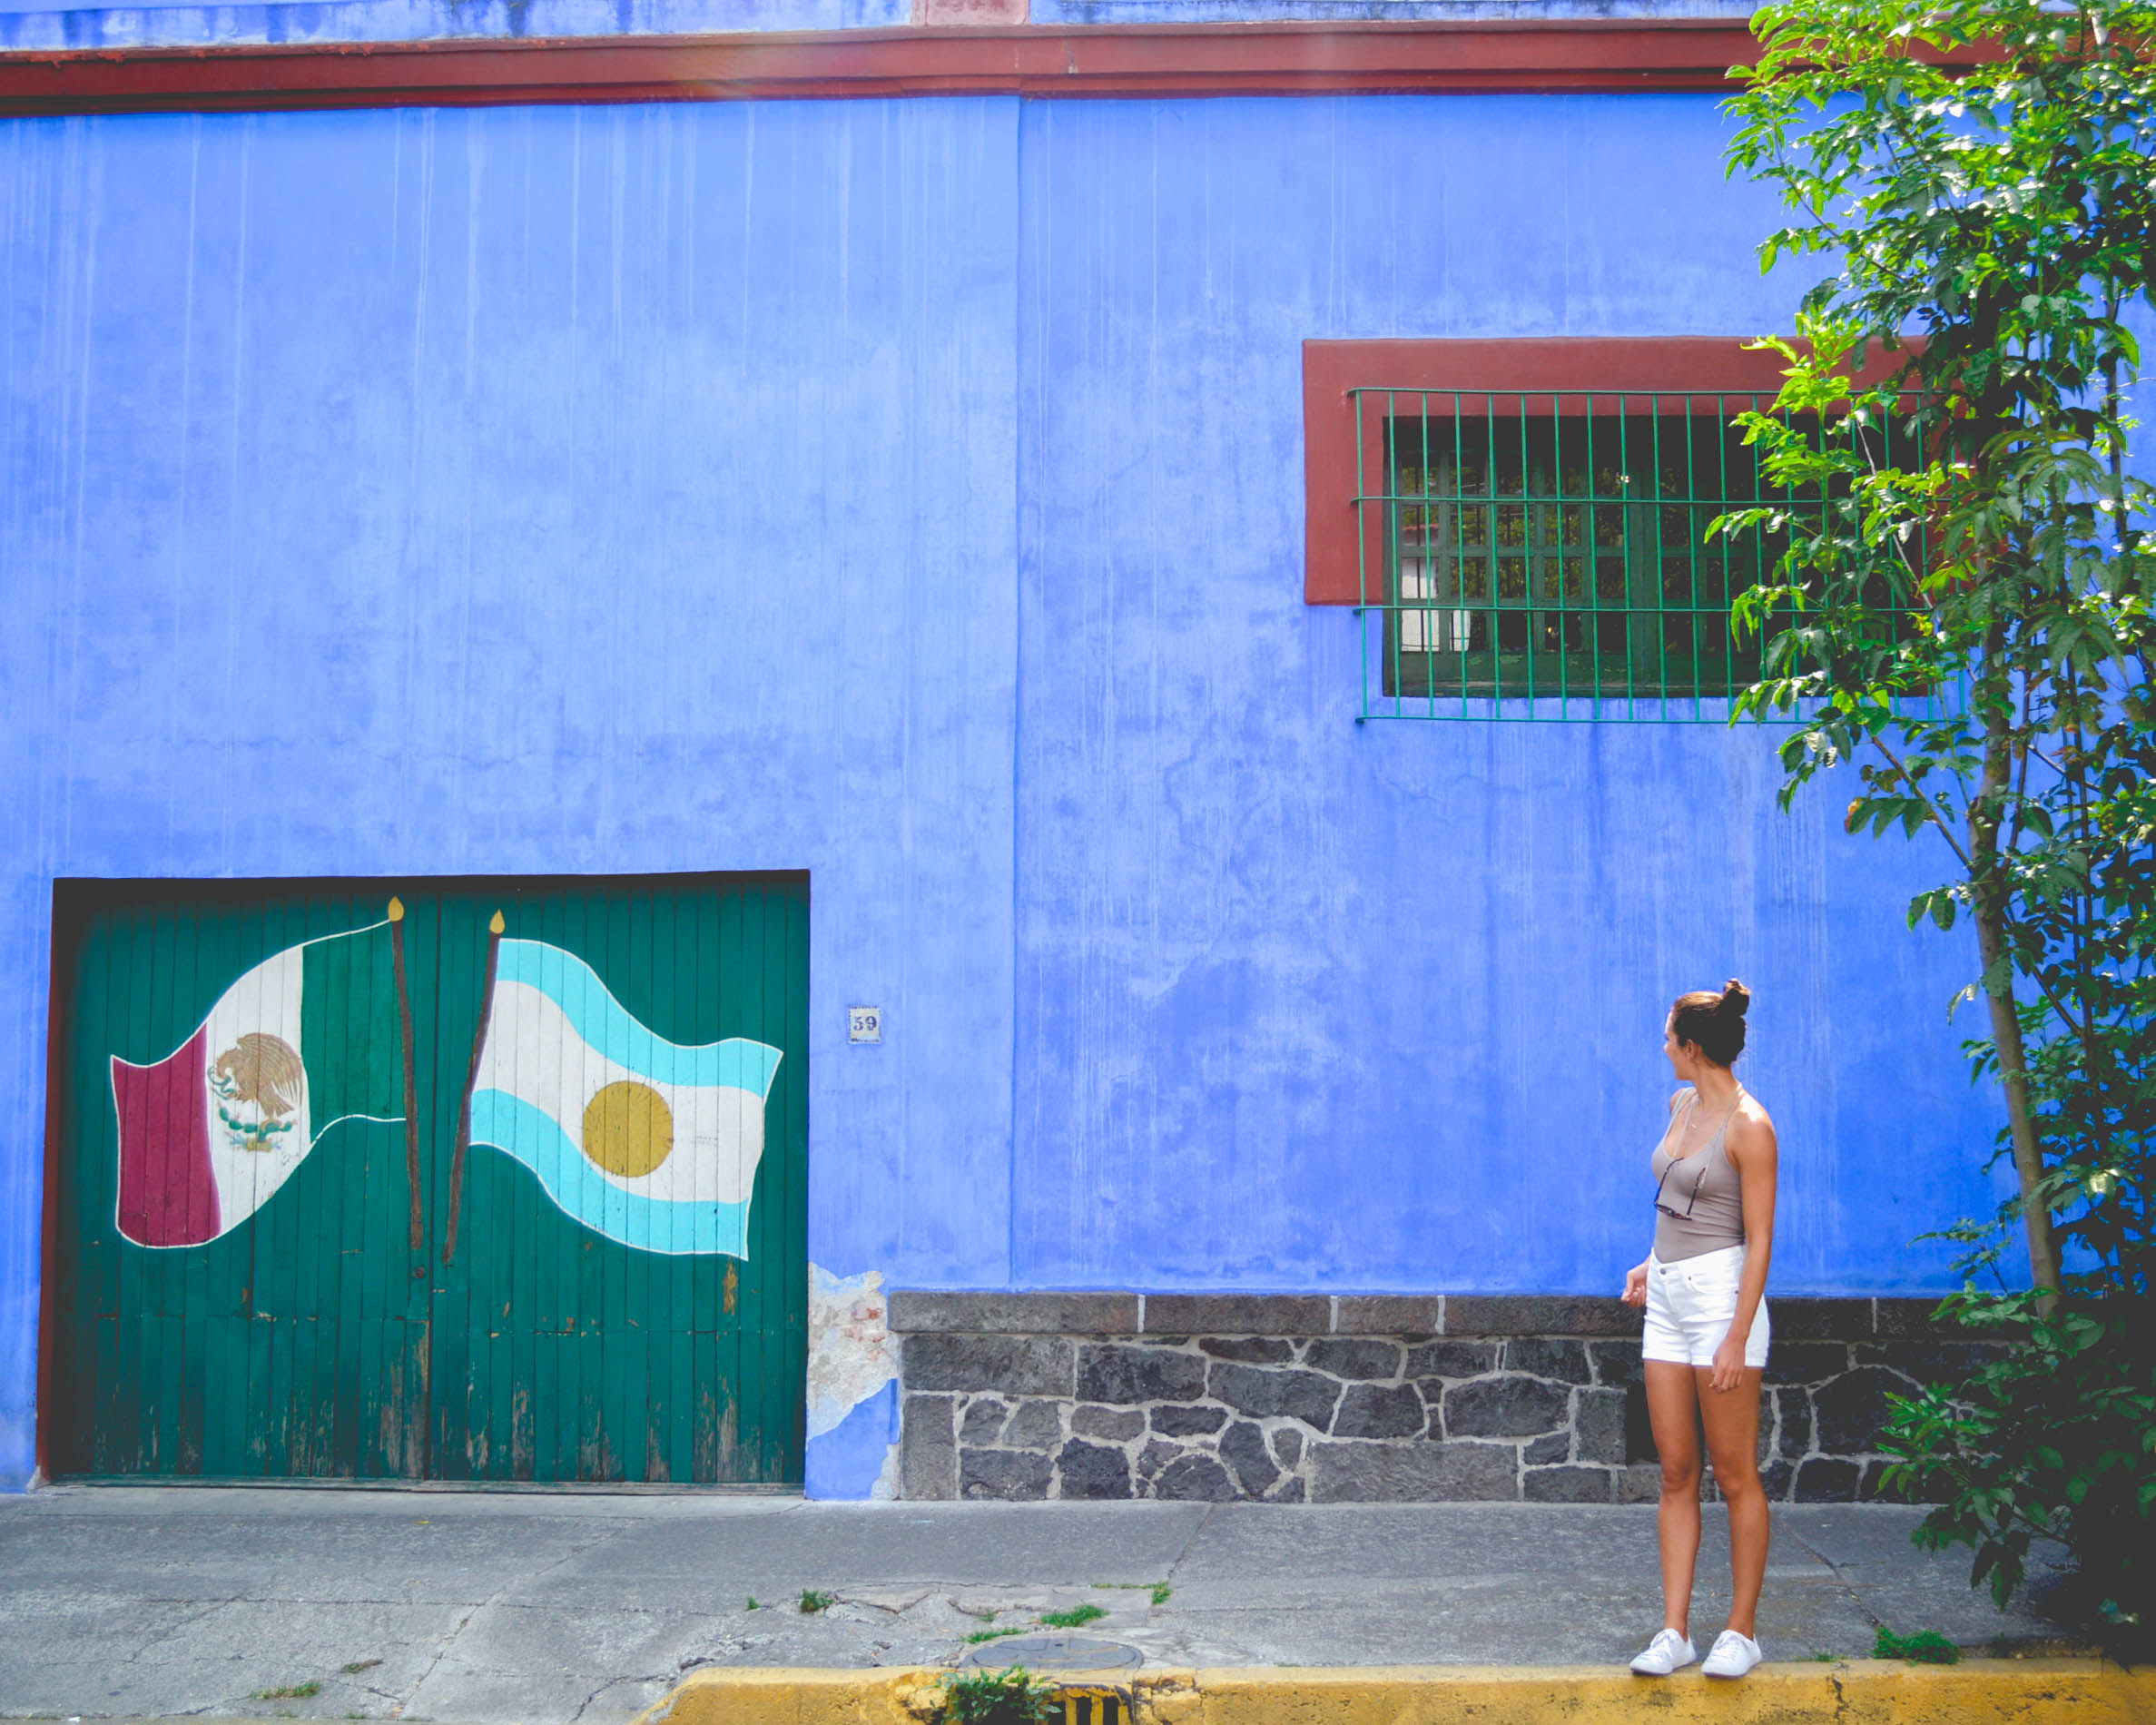 One of things you should do in Mexico City is visit the Frida Kahlo Museum, or Casa azul (the blue house)!